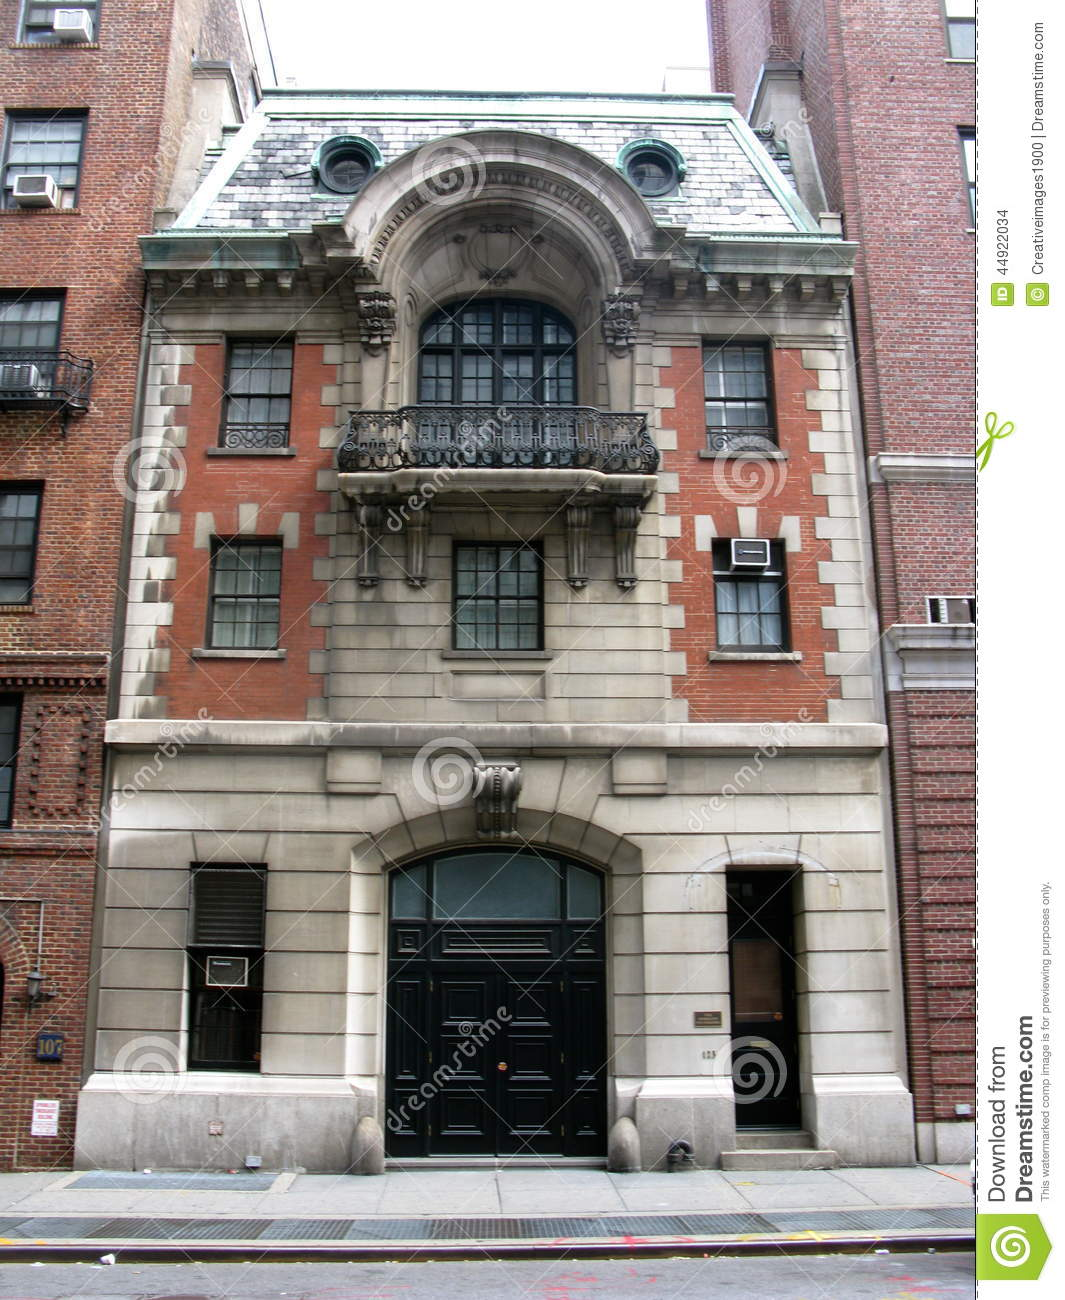 Brooklyn Academy of Music (BAM) New York City, Victorian Carriage House New York City Red Brick Upper East Side ...